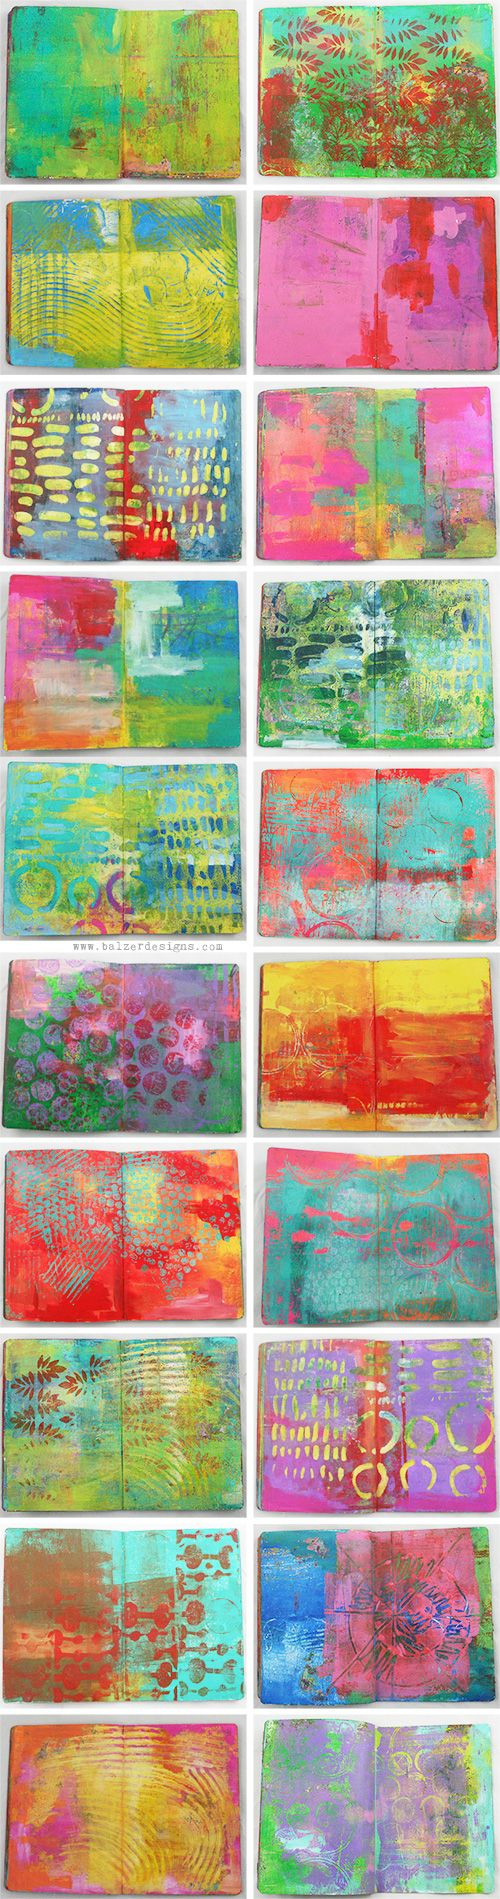 Balzer Designs - JOURNAL EVERY DAY: GELLI PRINTED JOURNALS PAGES; aren't these great!!!